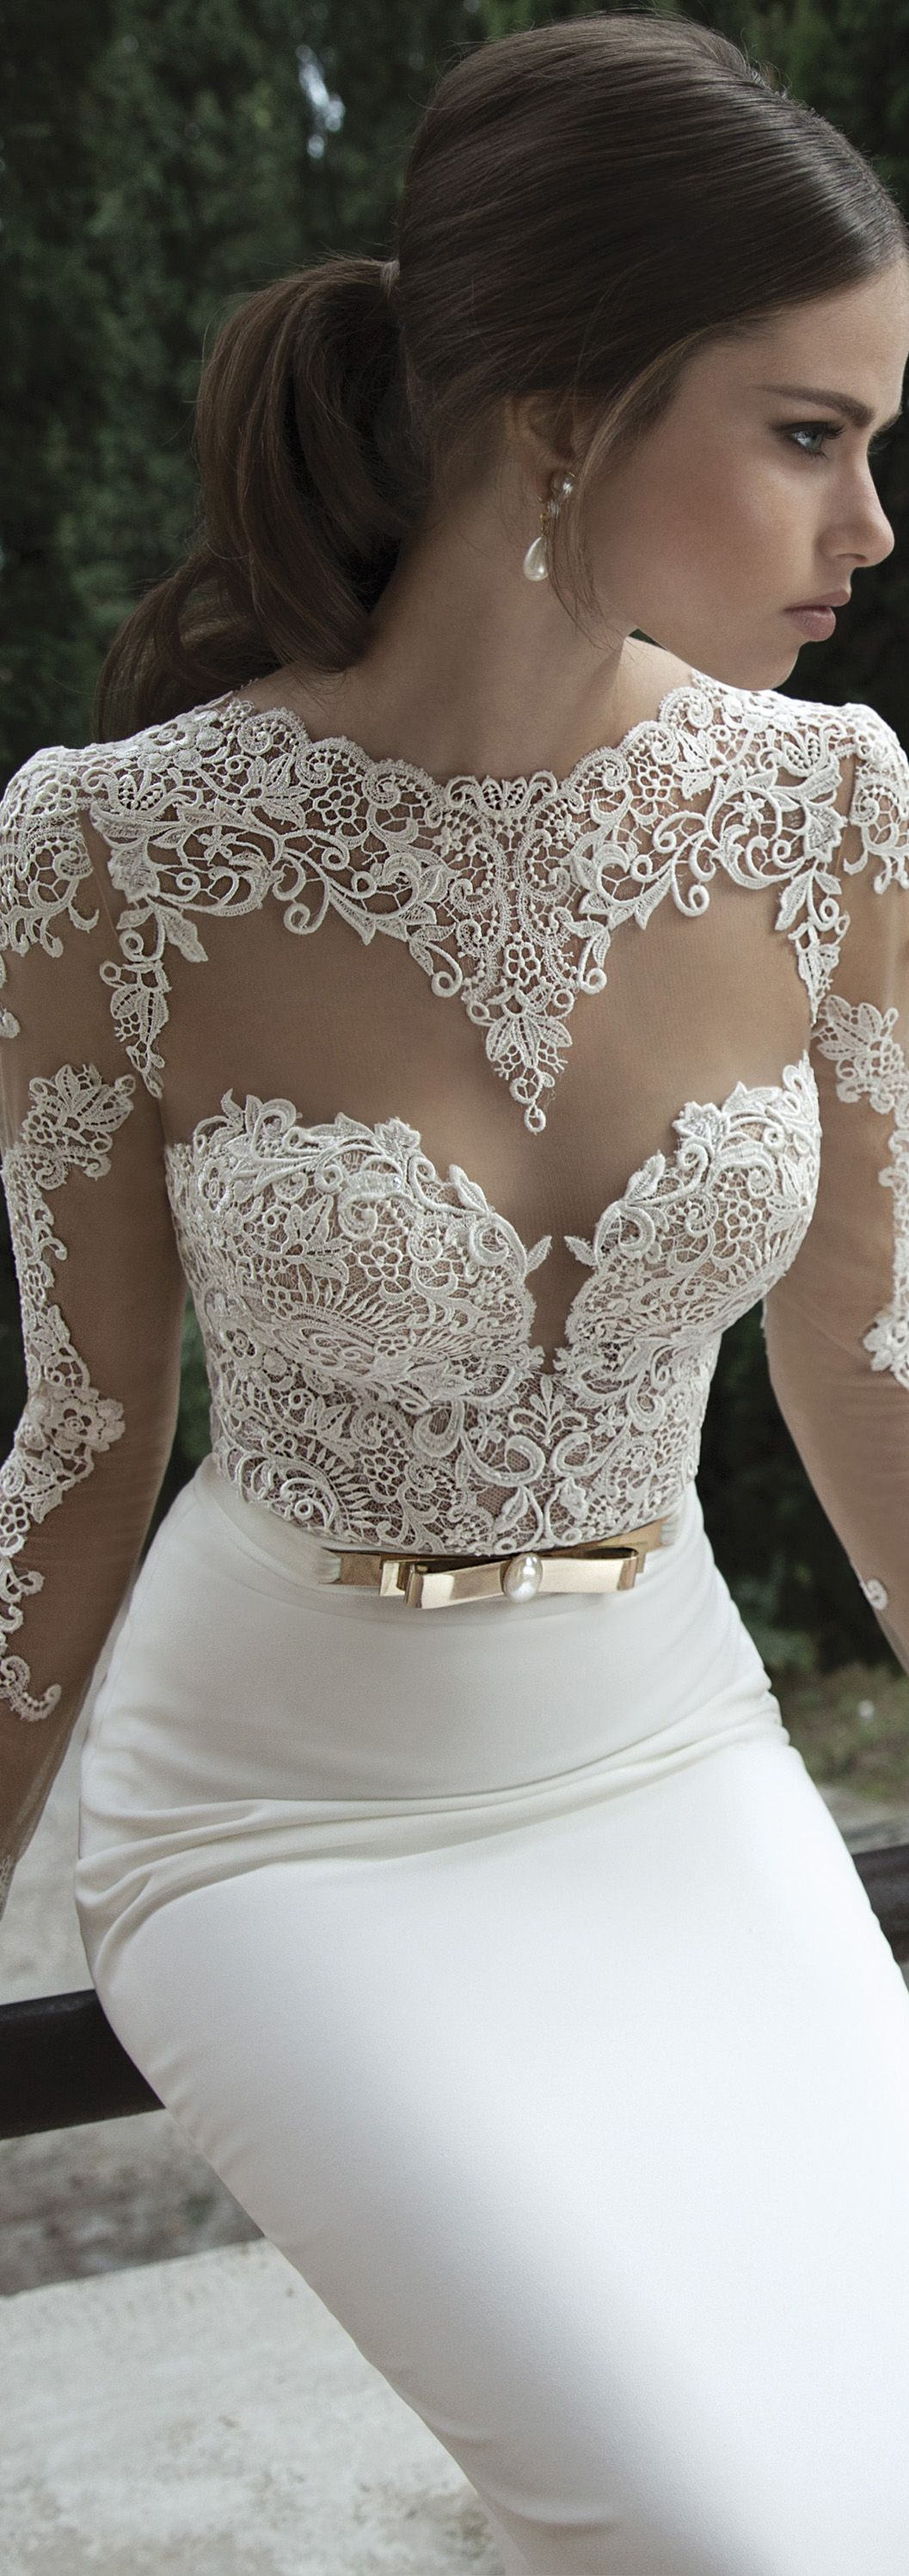 This would make for such an iconic look on your wedding day. A seriously figure hugging dress by @bertabridal.